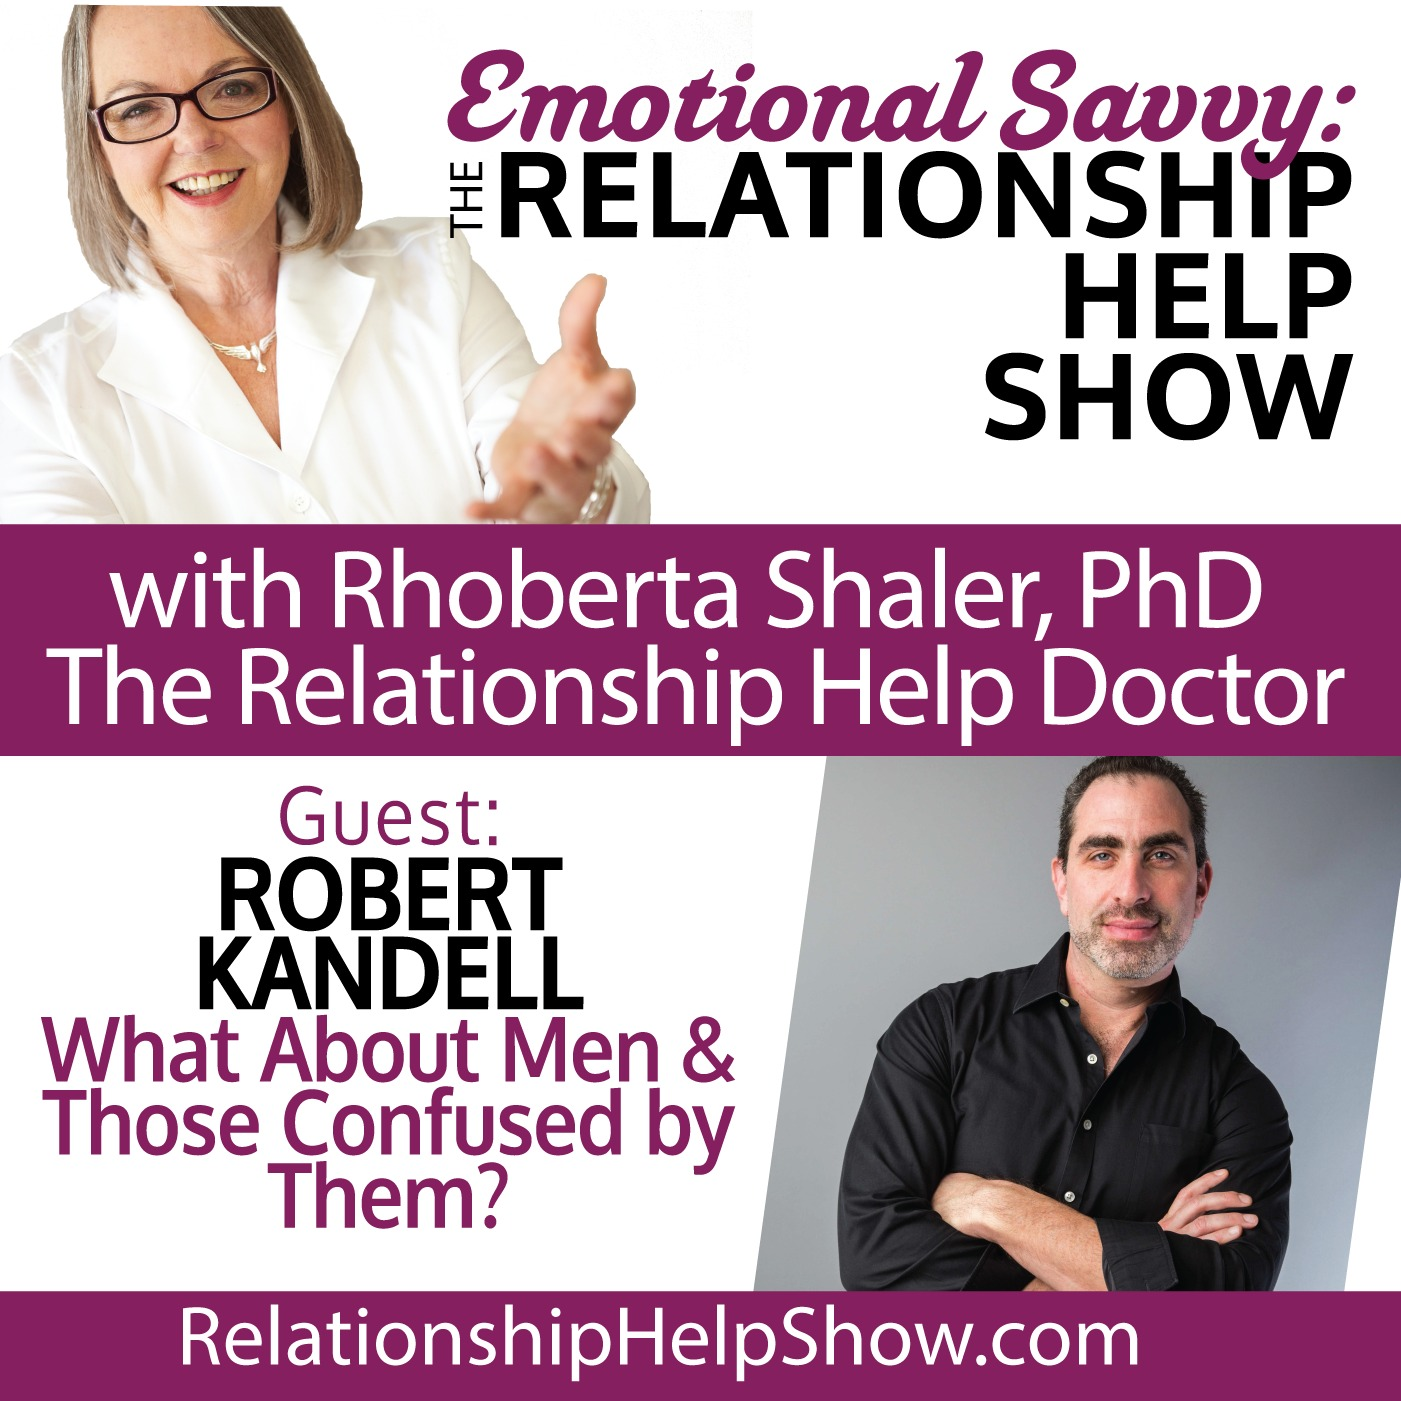 What About Men...and Those Confused By Them? GUEST: Robert Kandell